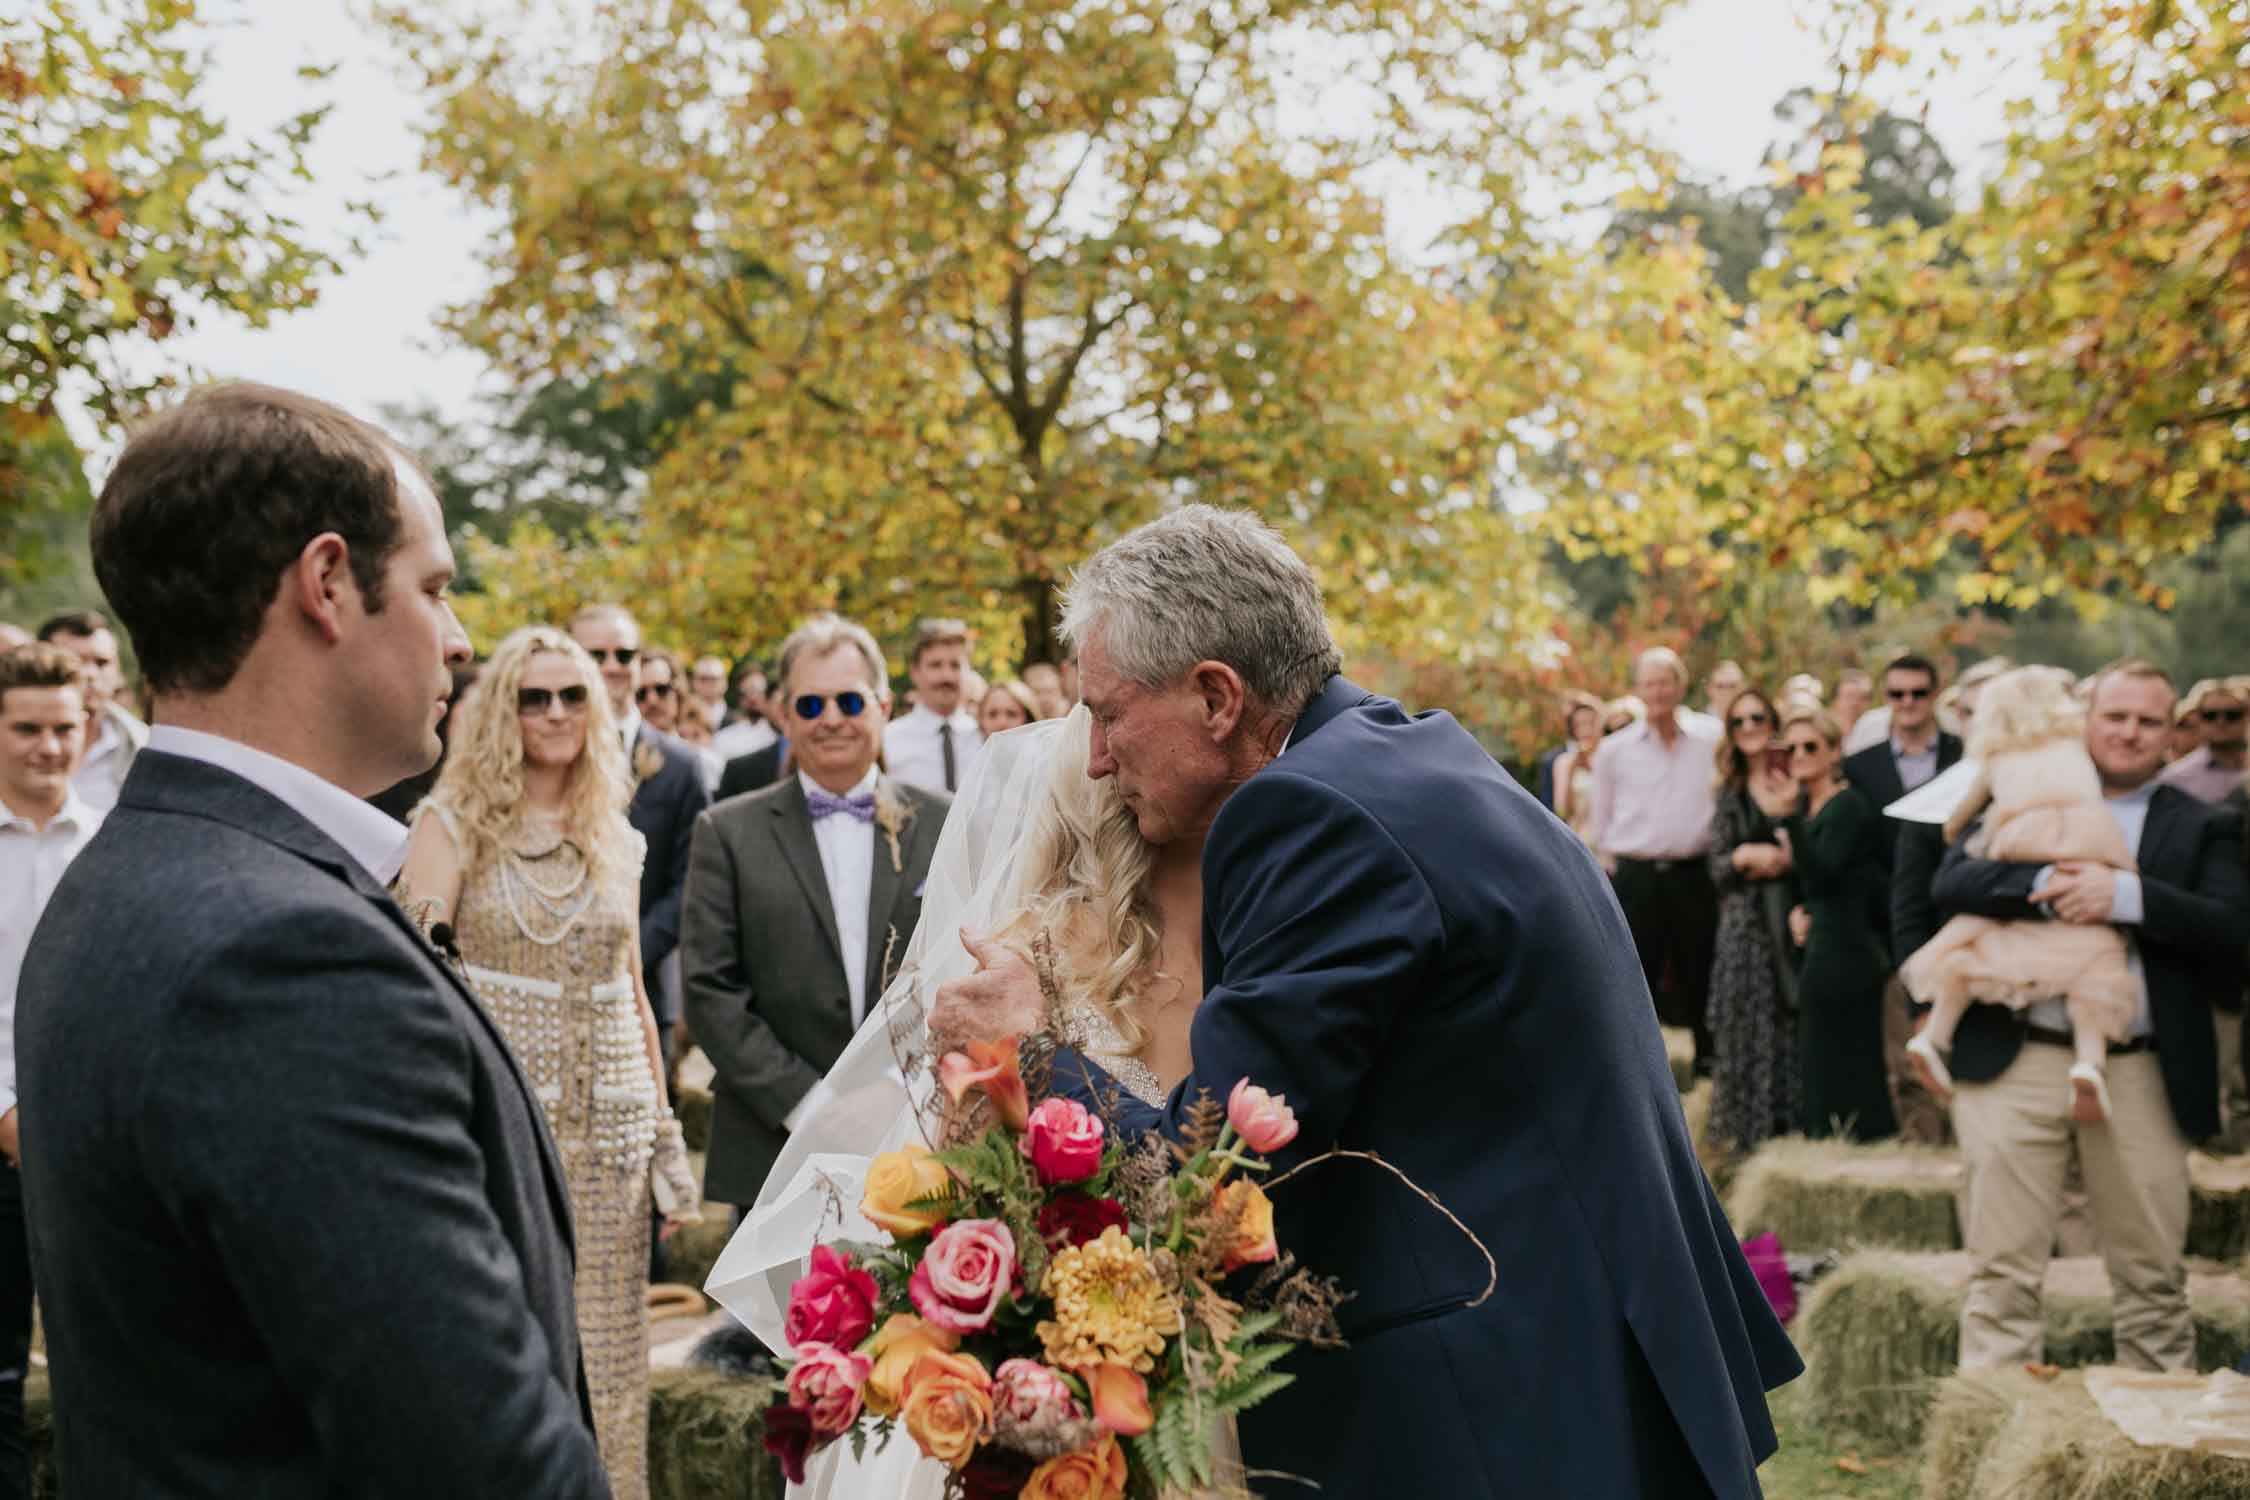 Bride and father embracing at the top of the aisle before he hands her over to her groom. Bride wearing a low cut dress with beautiful and detailed beadwork with a skirt that is see through and cute shorts underneath almost like a jump suit underneath a wedding dress. She is holding a wedding bouquet of burnt orange pink and red flowers and roses with dried ferns and grass in it.